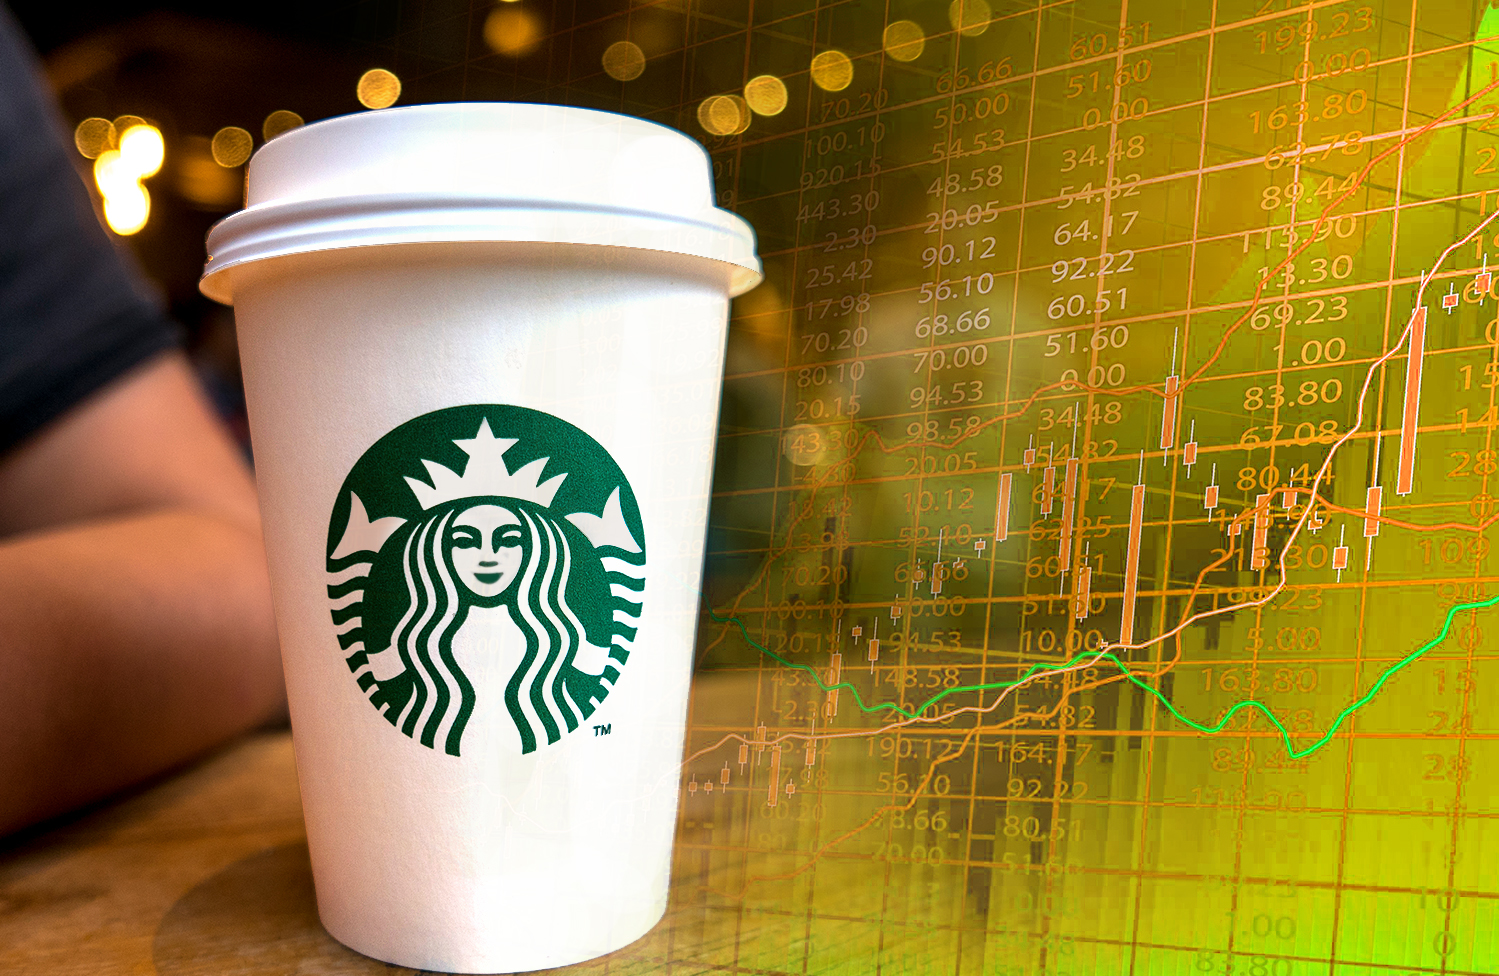 starbucks stock price 2019